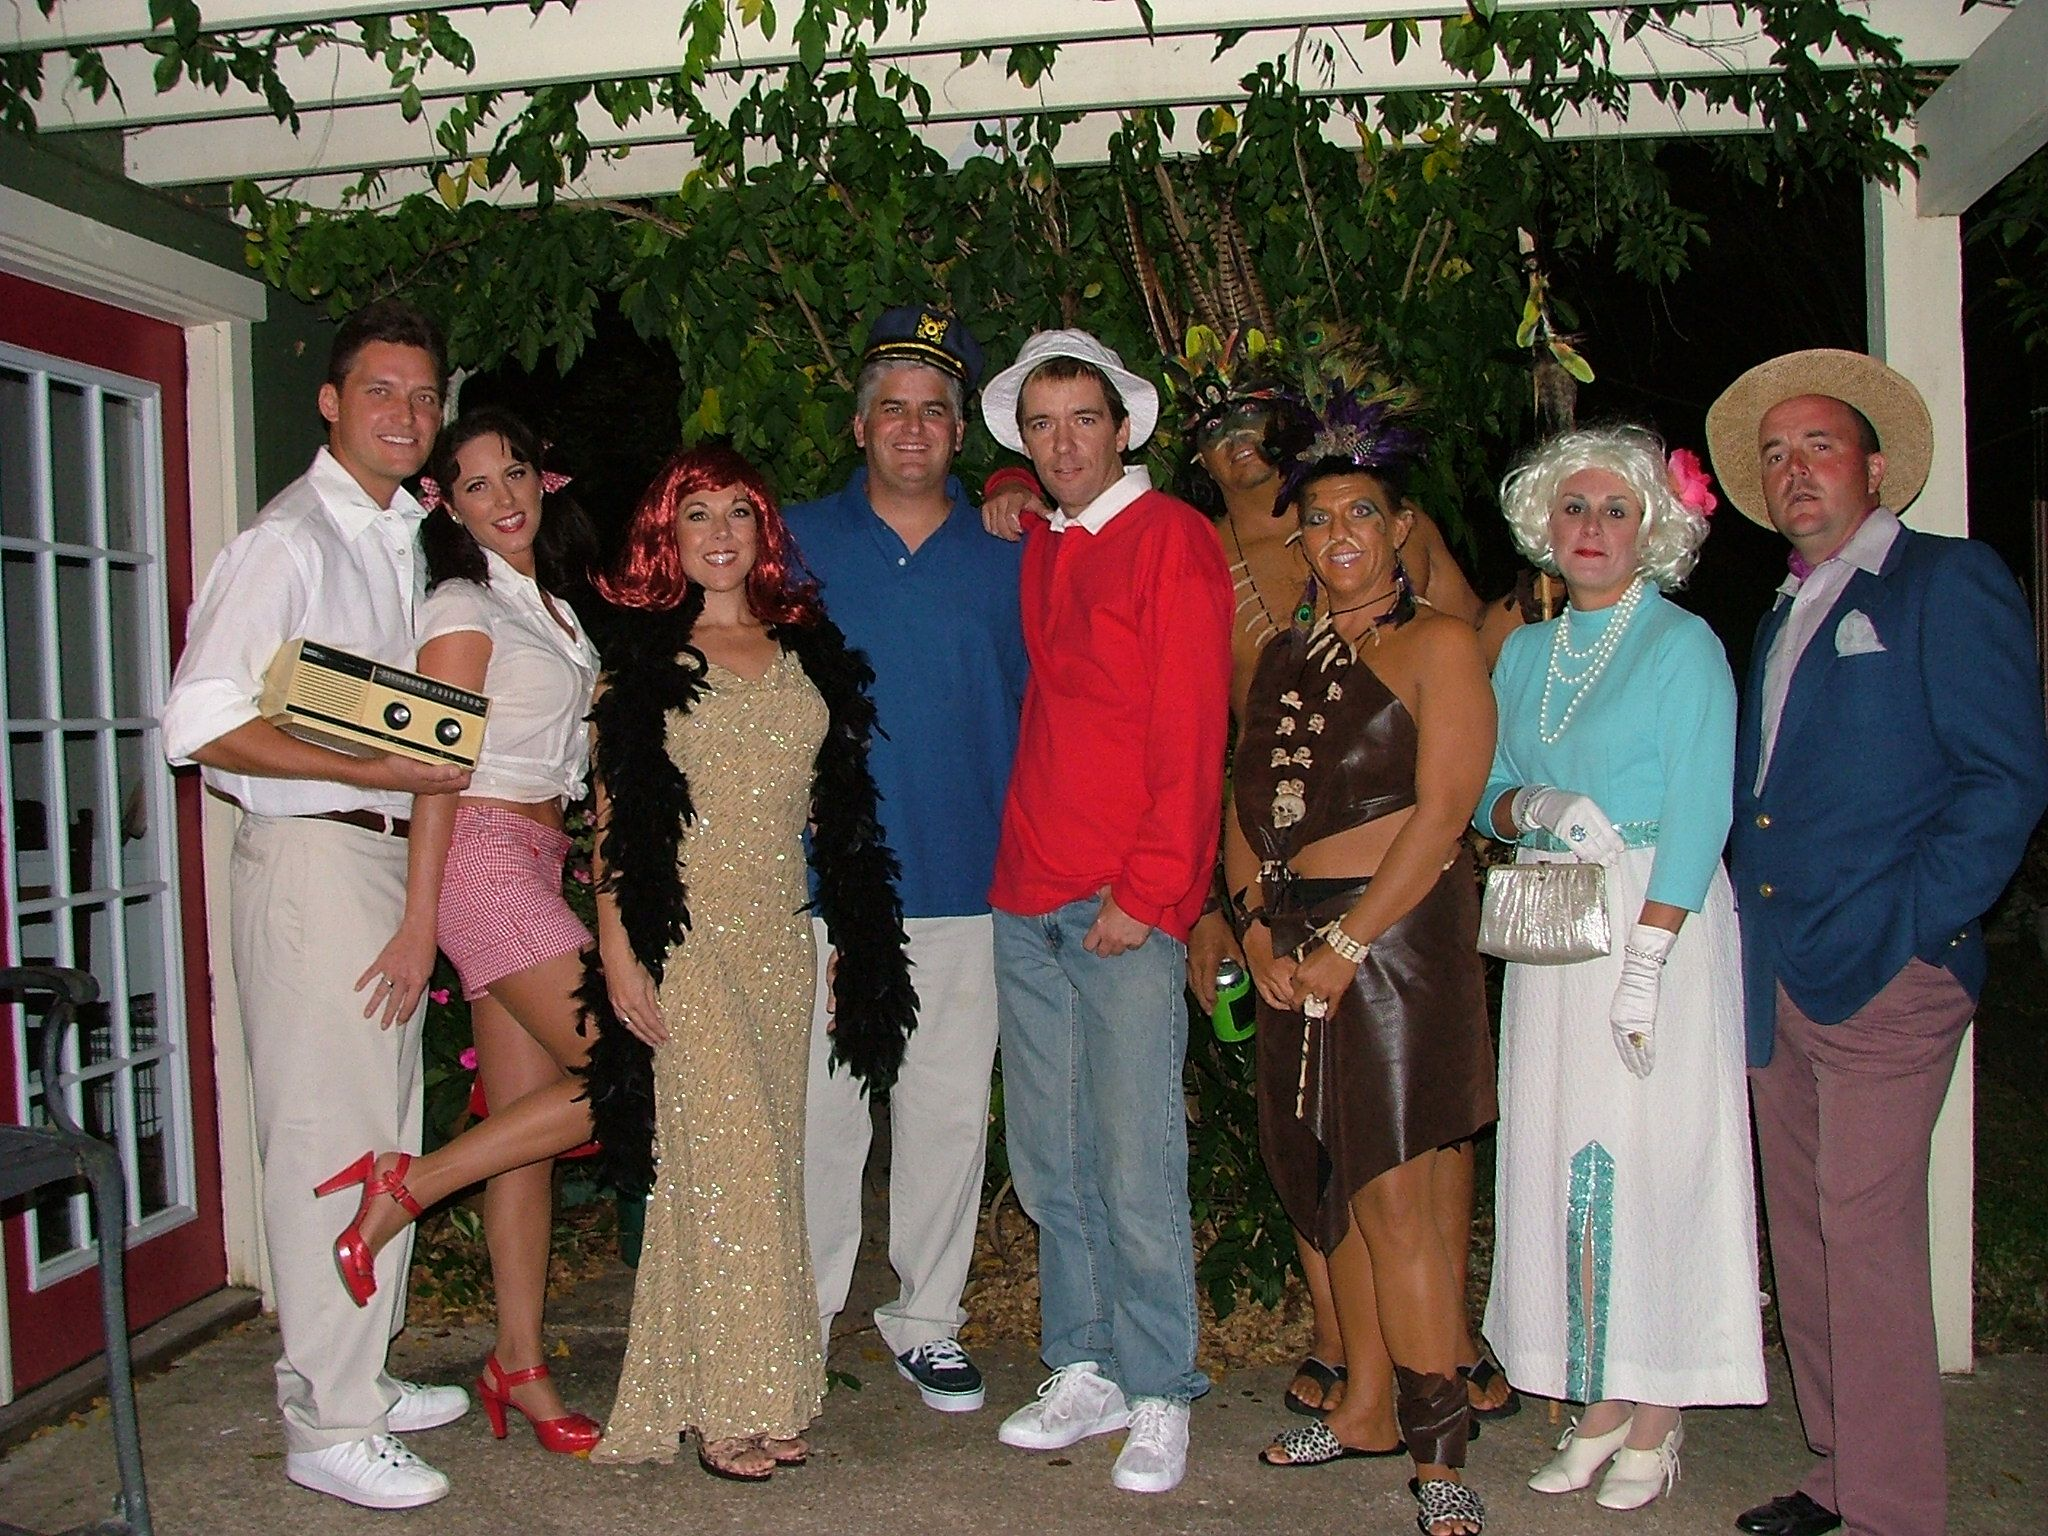 Caveman Dress Up Ideas : Fun theme for a large group of friends. halloween costume ideas